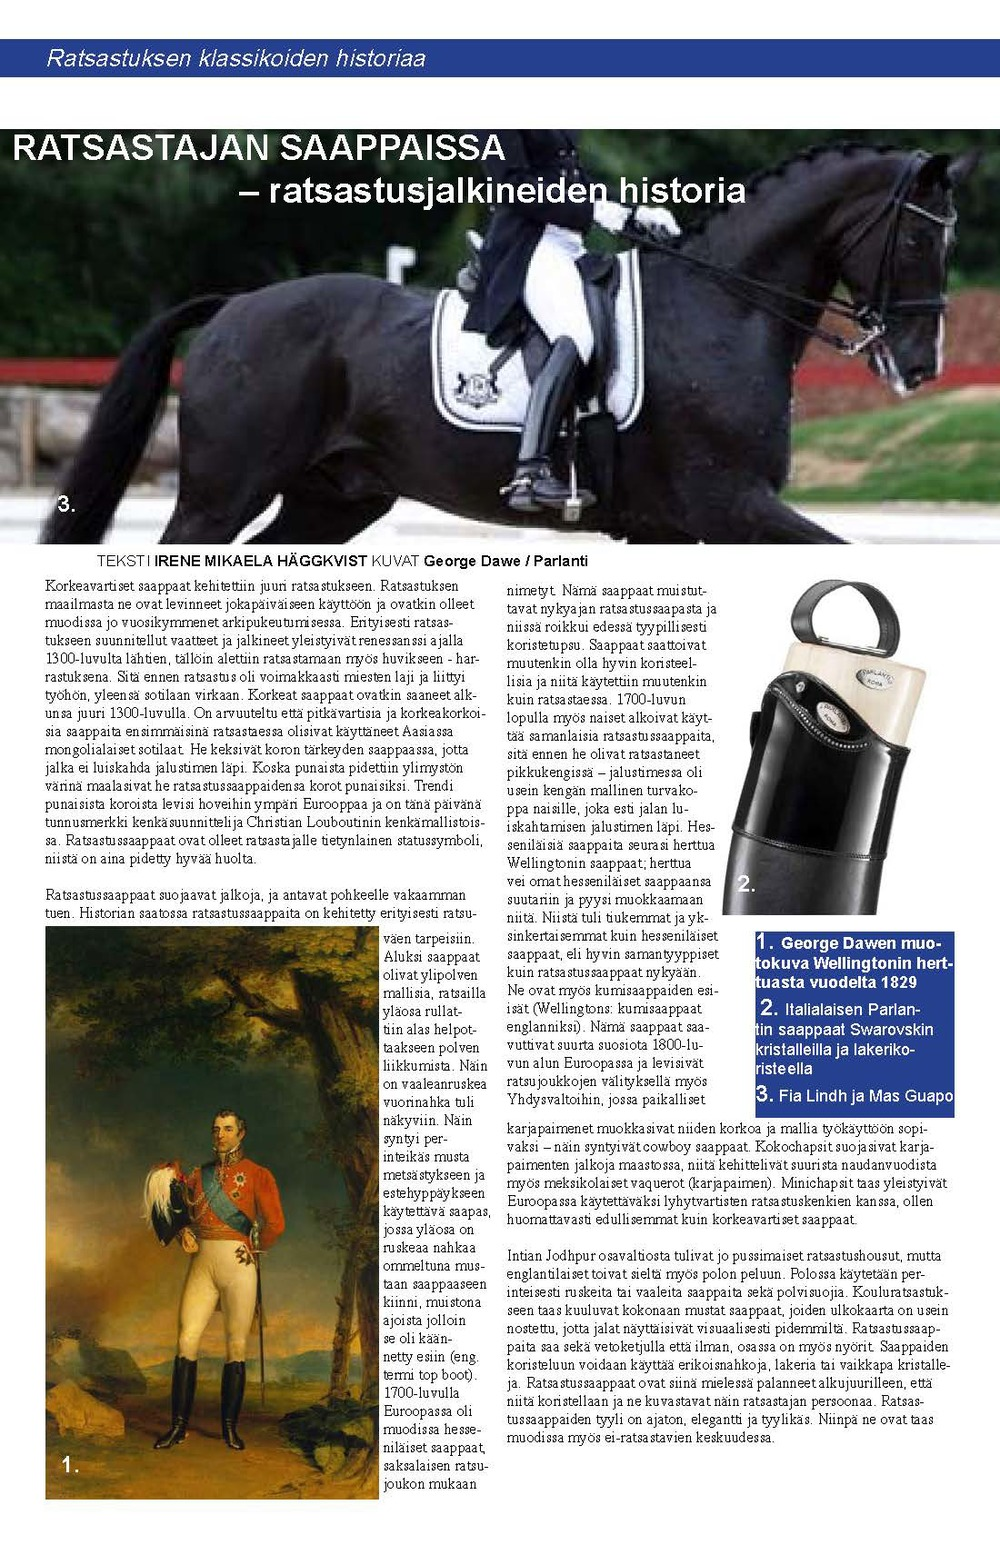 Irene Mikaela Häggkvist as a columnist for the Hippos magazine (The Equestrian Federation of Finland) about the history of riding apparel. History of the riding boots, June 2013.